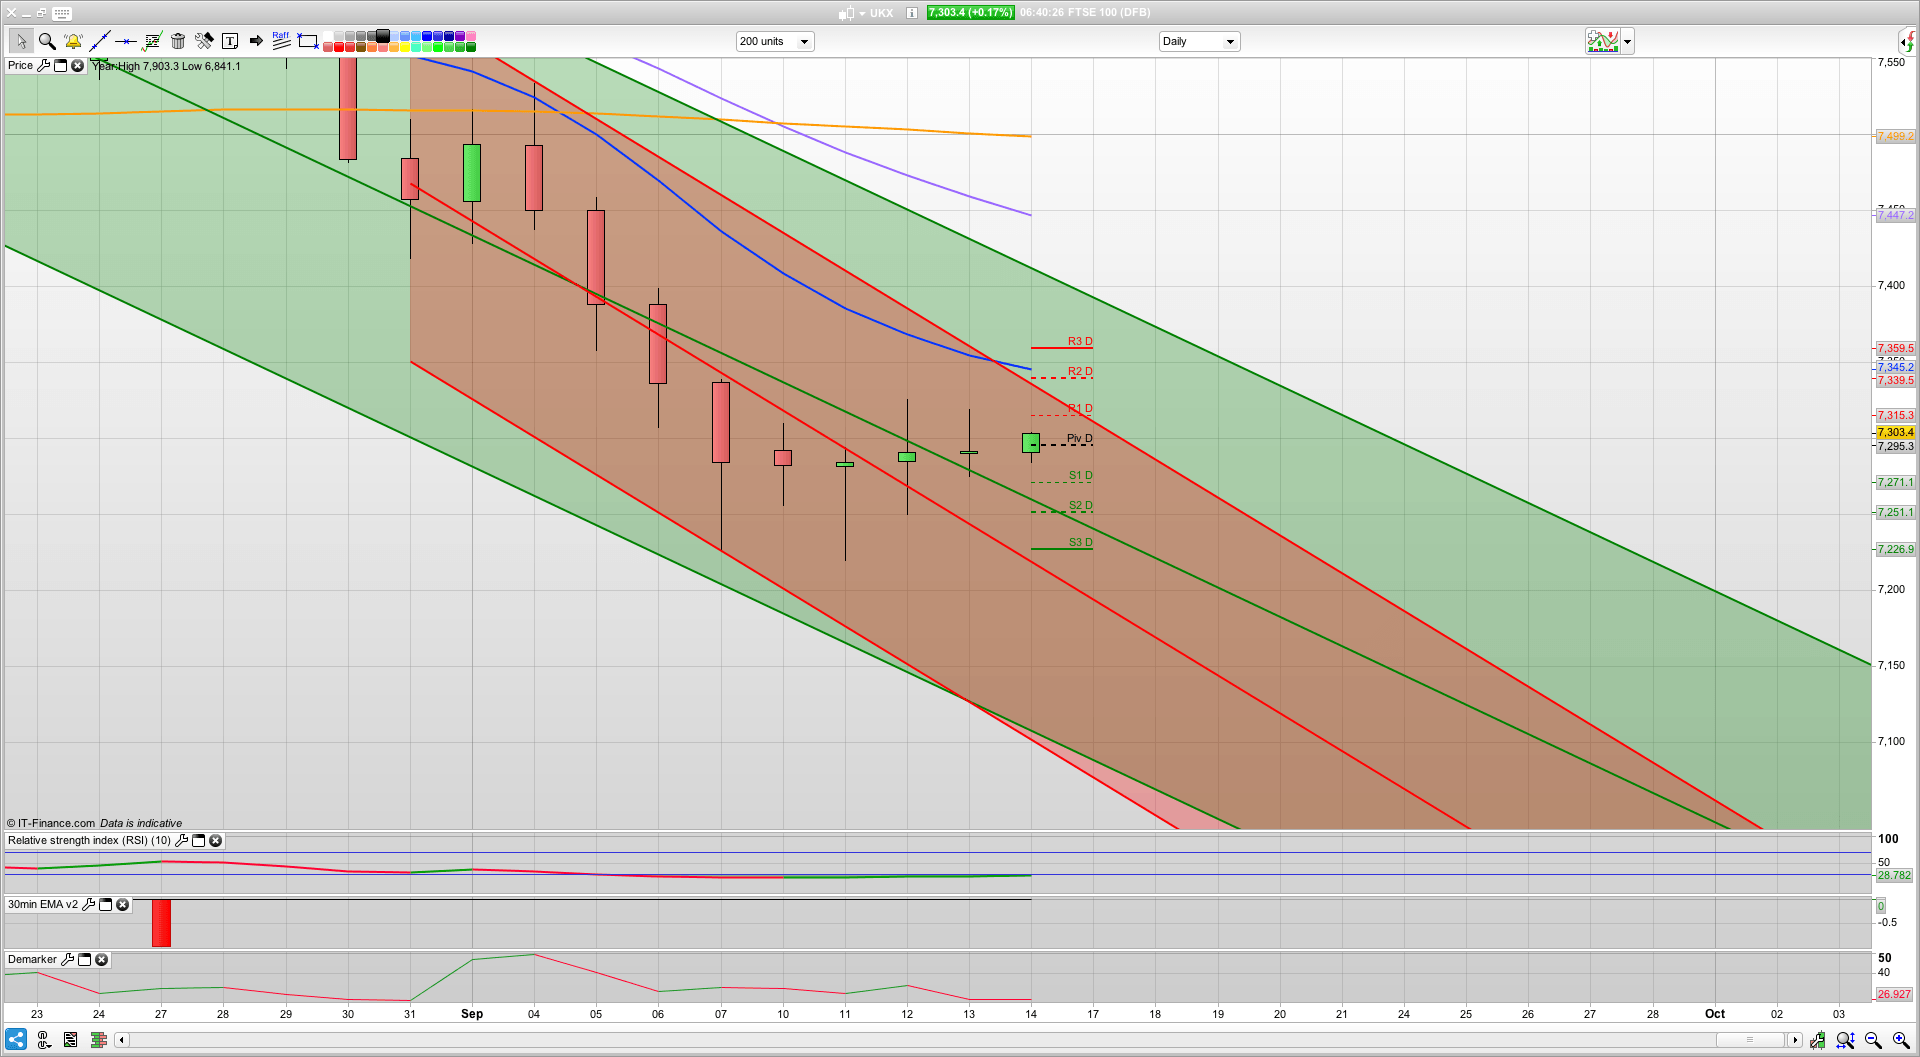 Bulls will break 7320 for 7350 7371 and 7392 | Carney doom mongering | Trading analysis